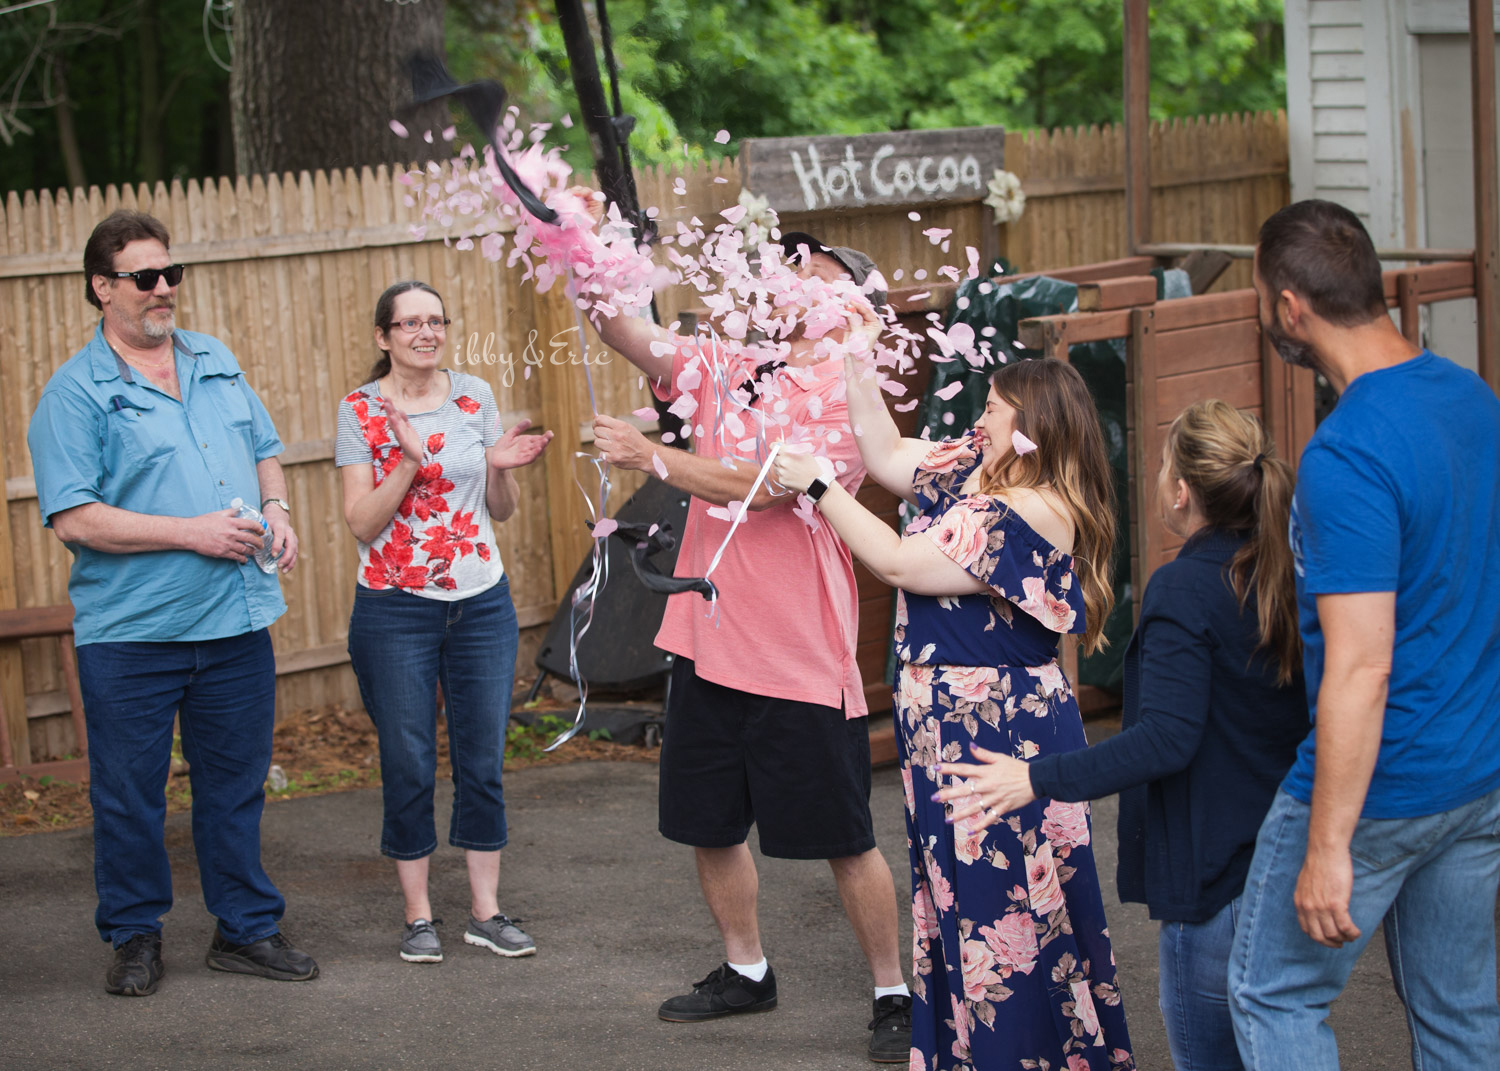 Excited parents-to-be pop a balloon to reveal pink confetti - it's a girl!